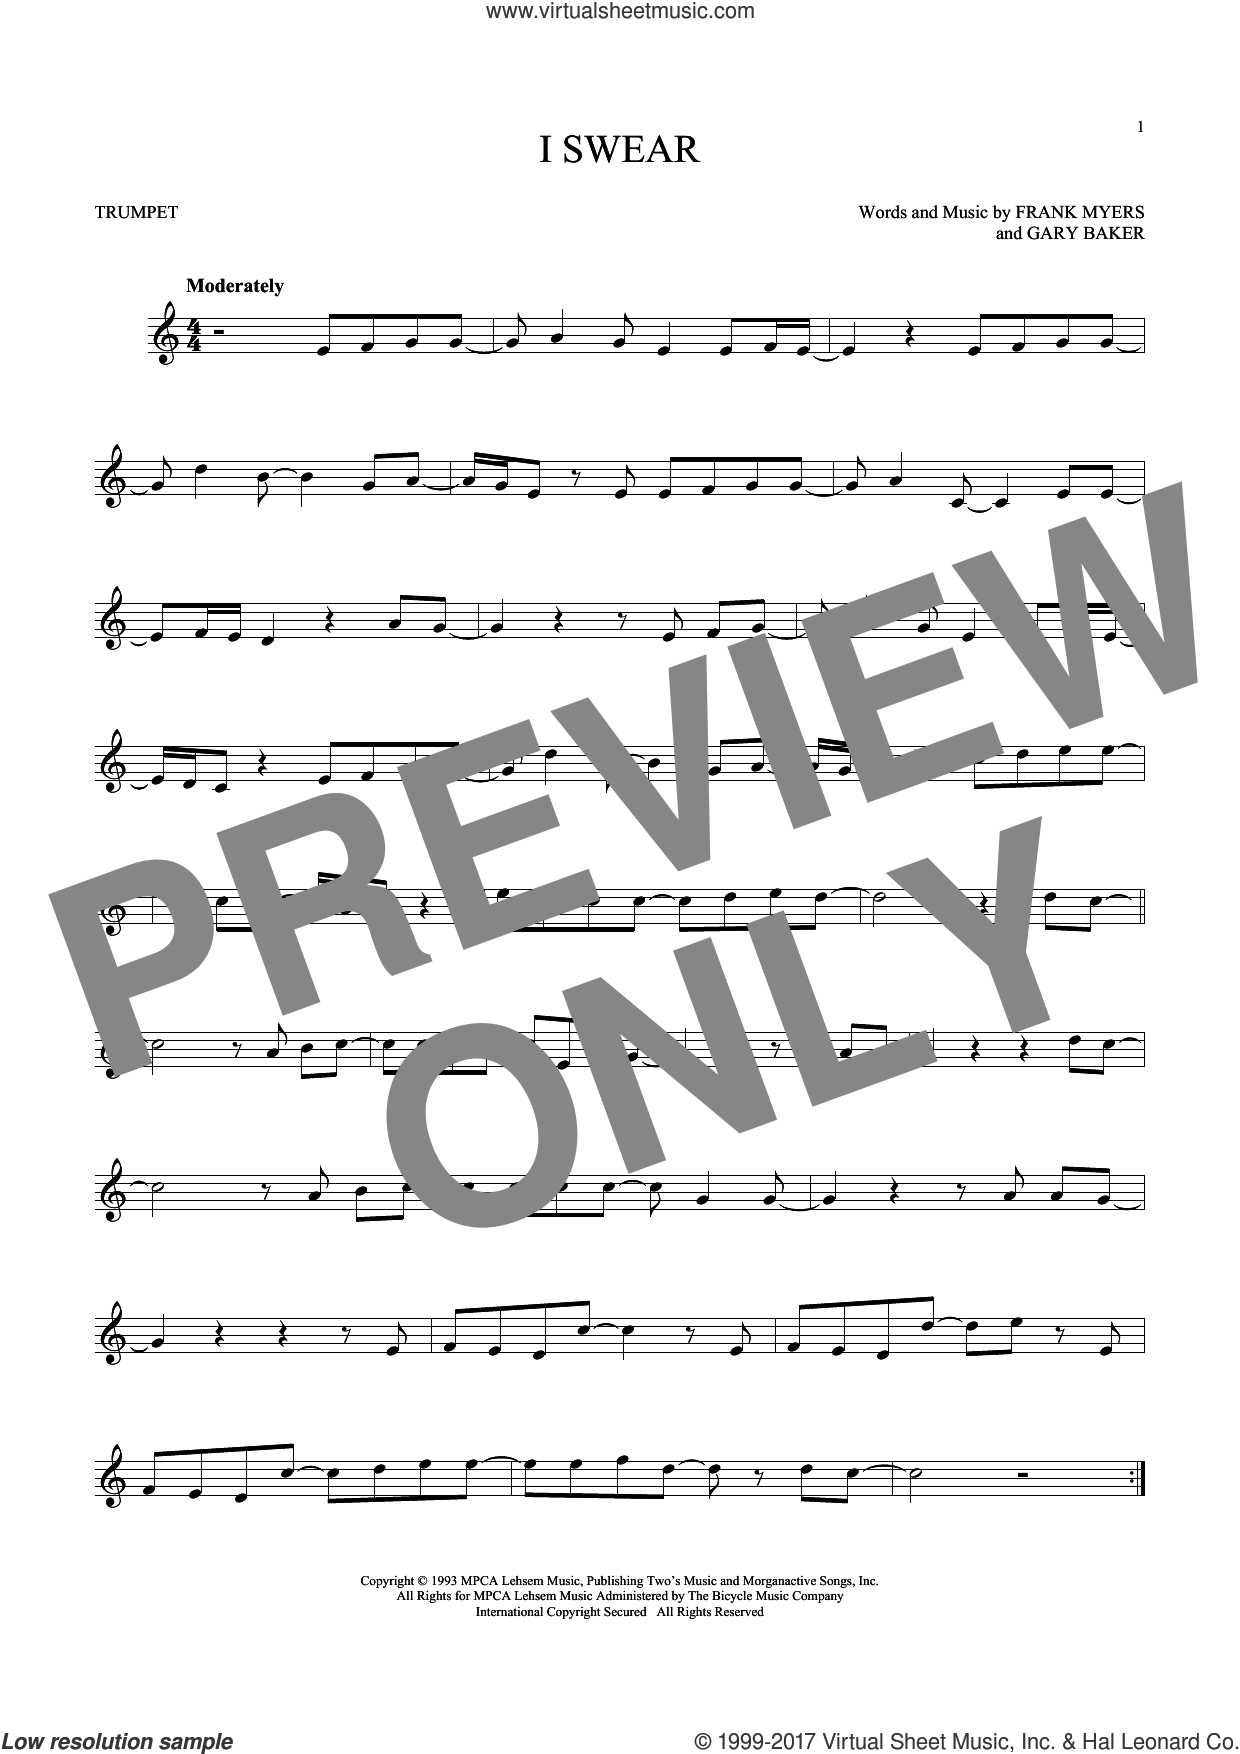 I Swear sheet music for trumpet solo by All-4-One, Frank Myers and Gary Baker, intermediate skill level